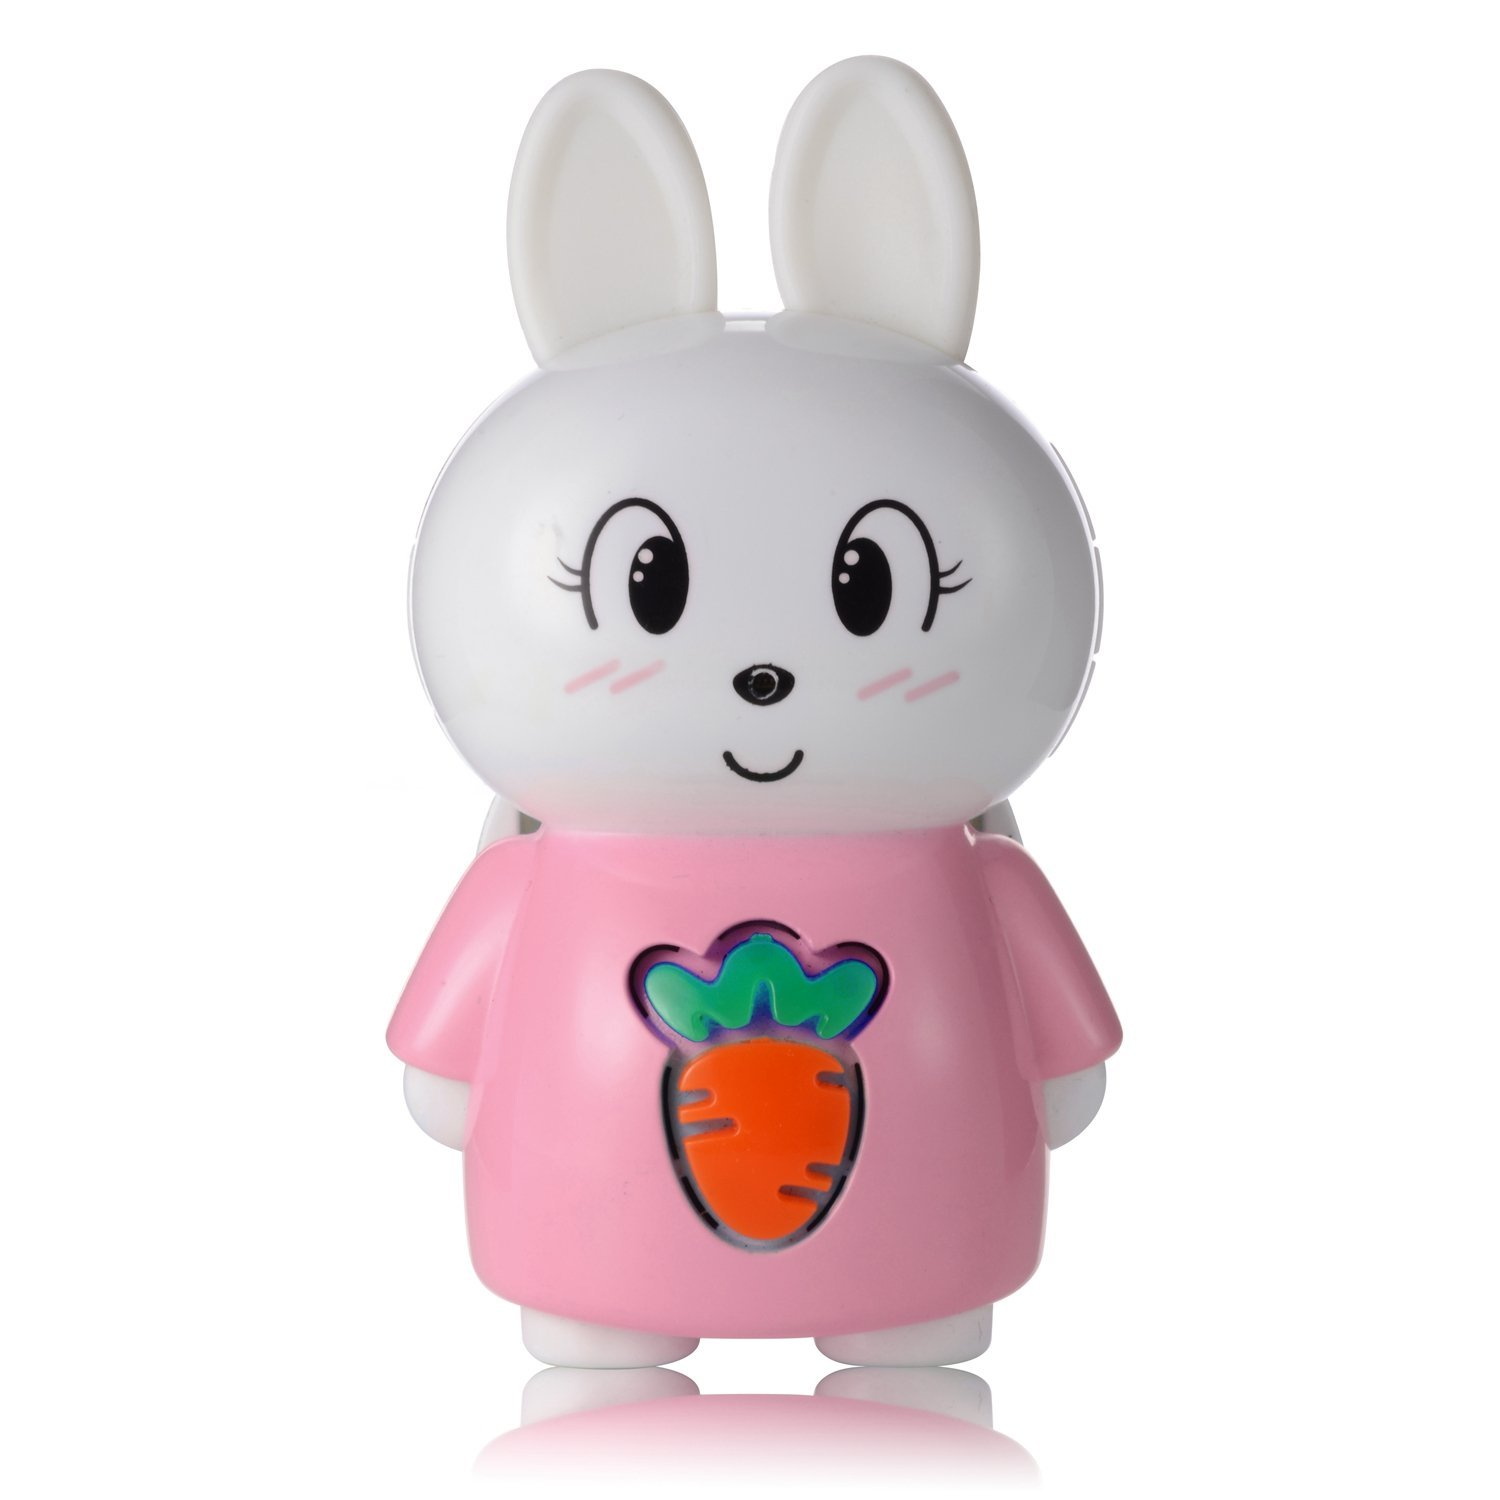 AGPTEK S1 8GB Bluetooth Bunny Storytelling for Kids,Wearable Children Digital Player, Pink RKS1P